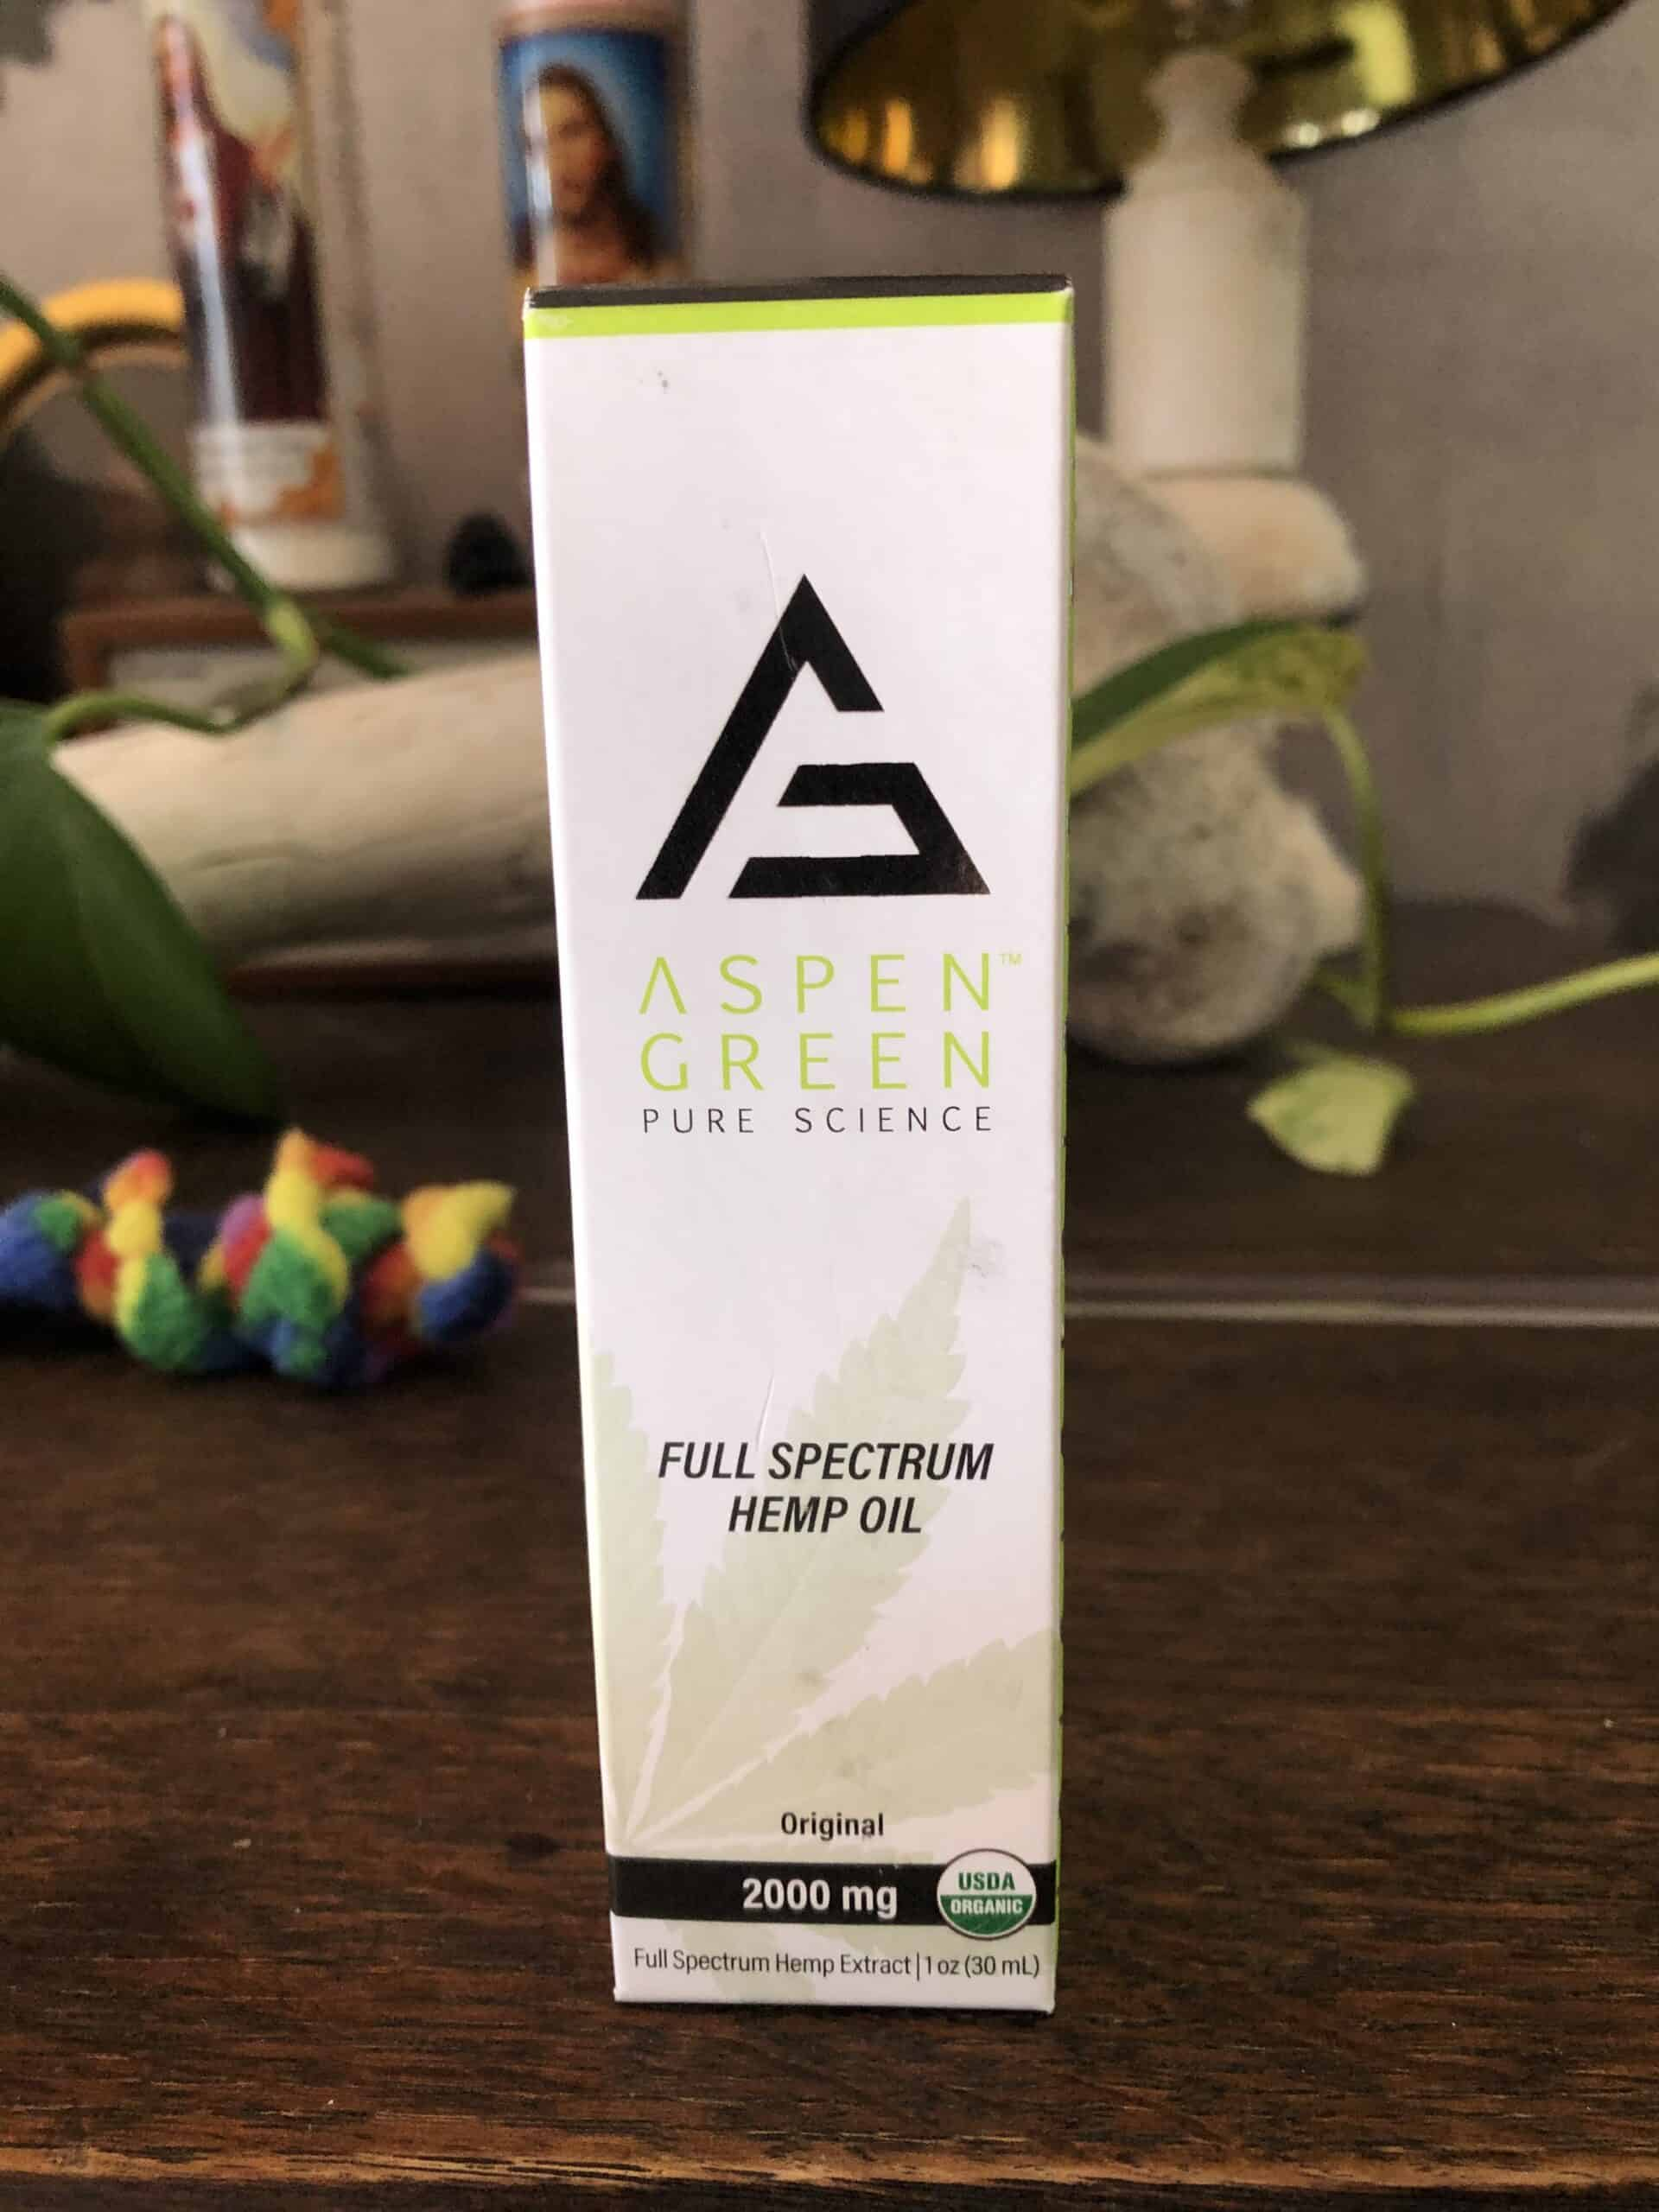 Aspen Green Full Spectrum Hemp Oil 2000 mg